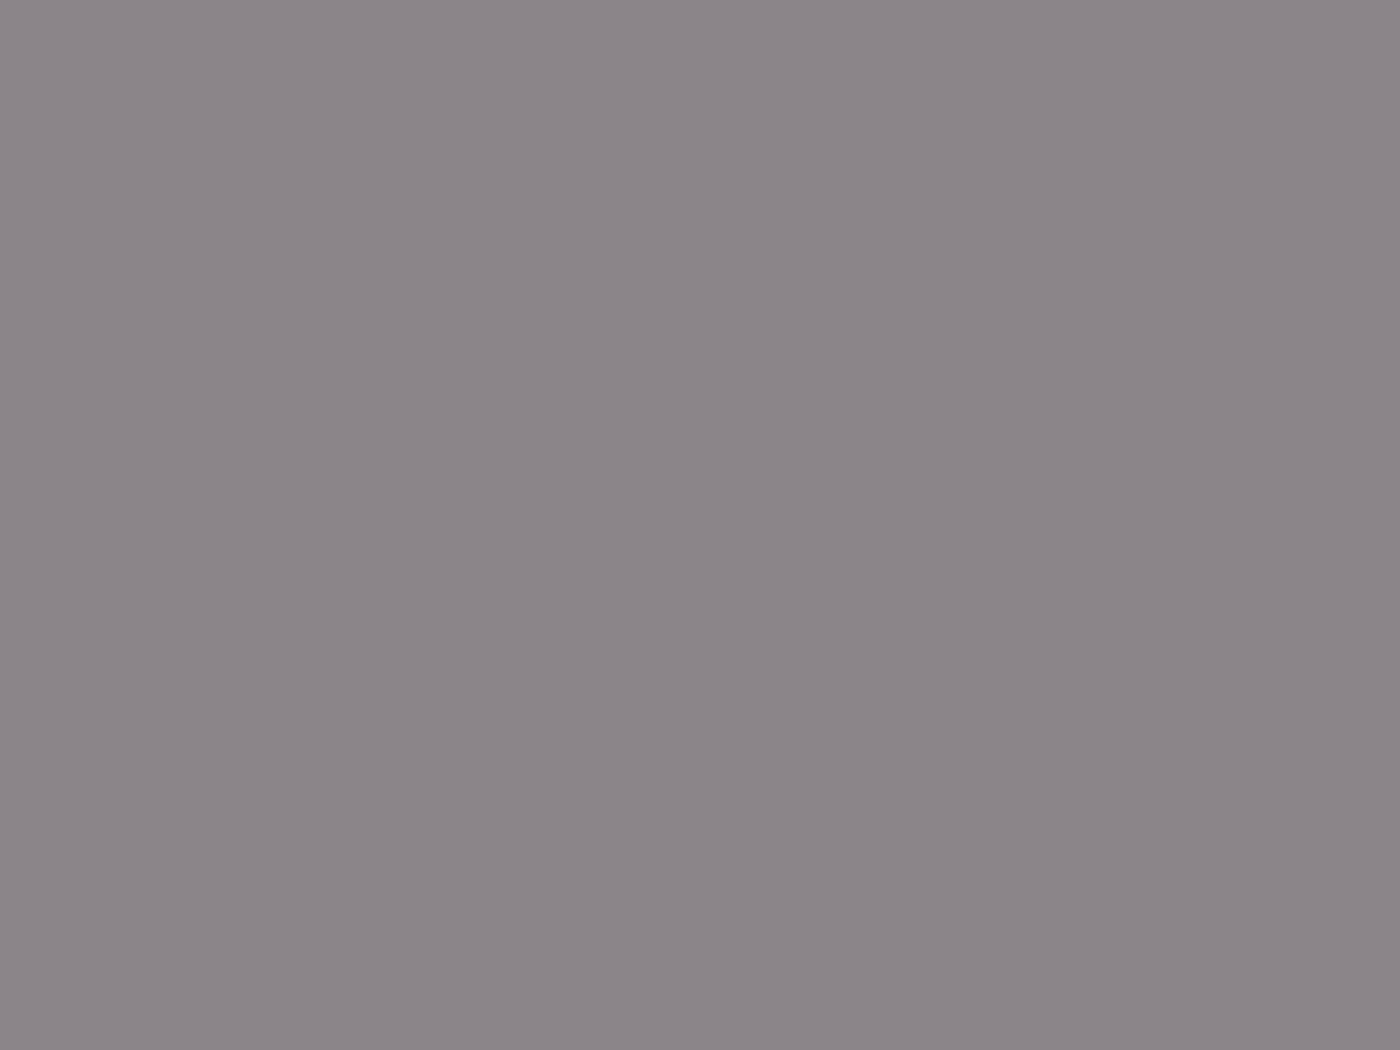 1400x1050 Taupe Gray Solid Color Background